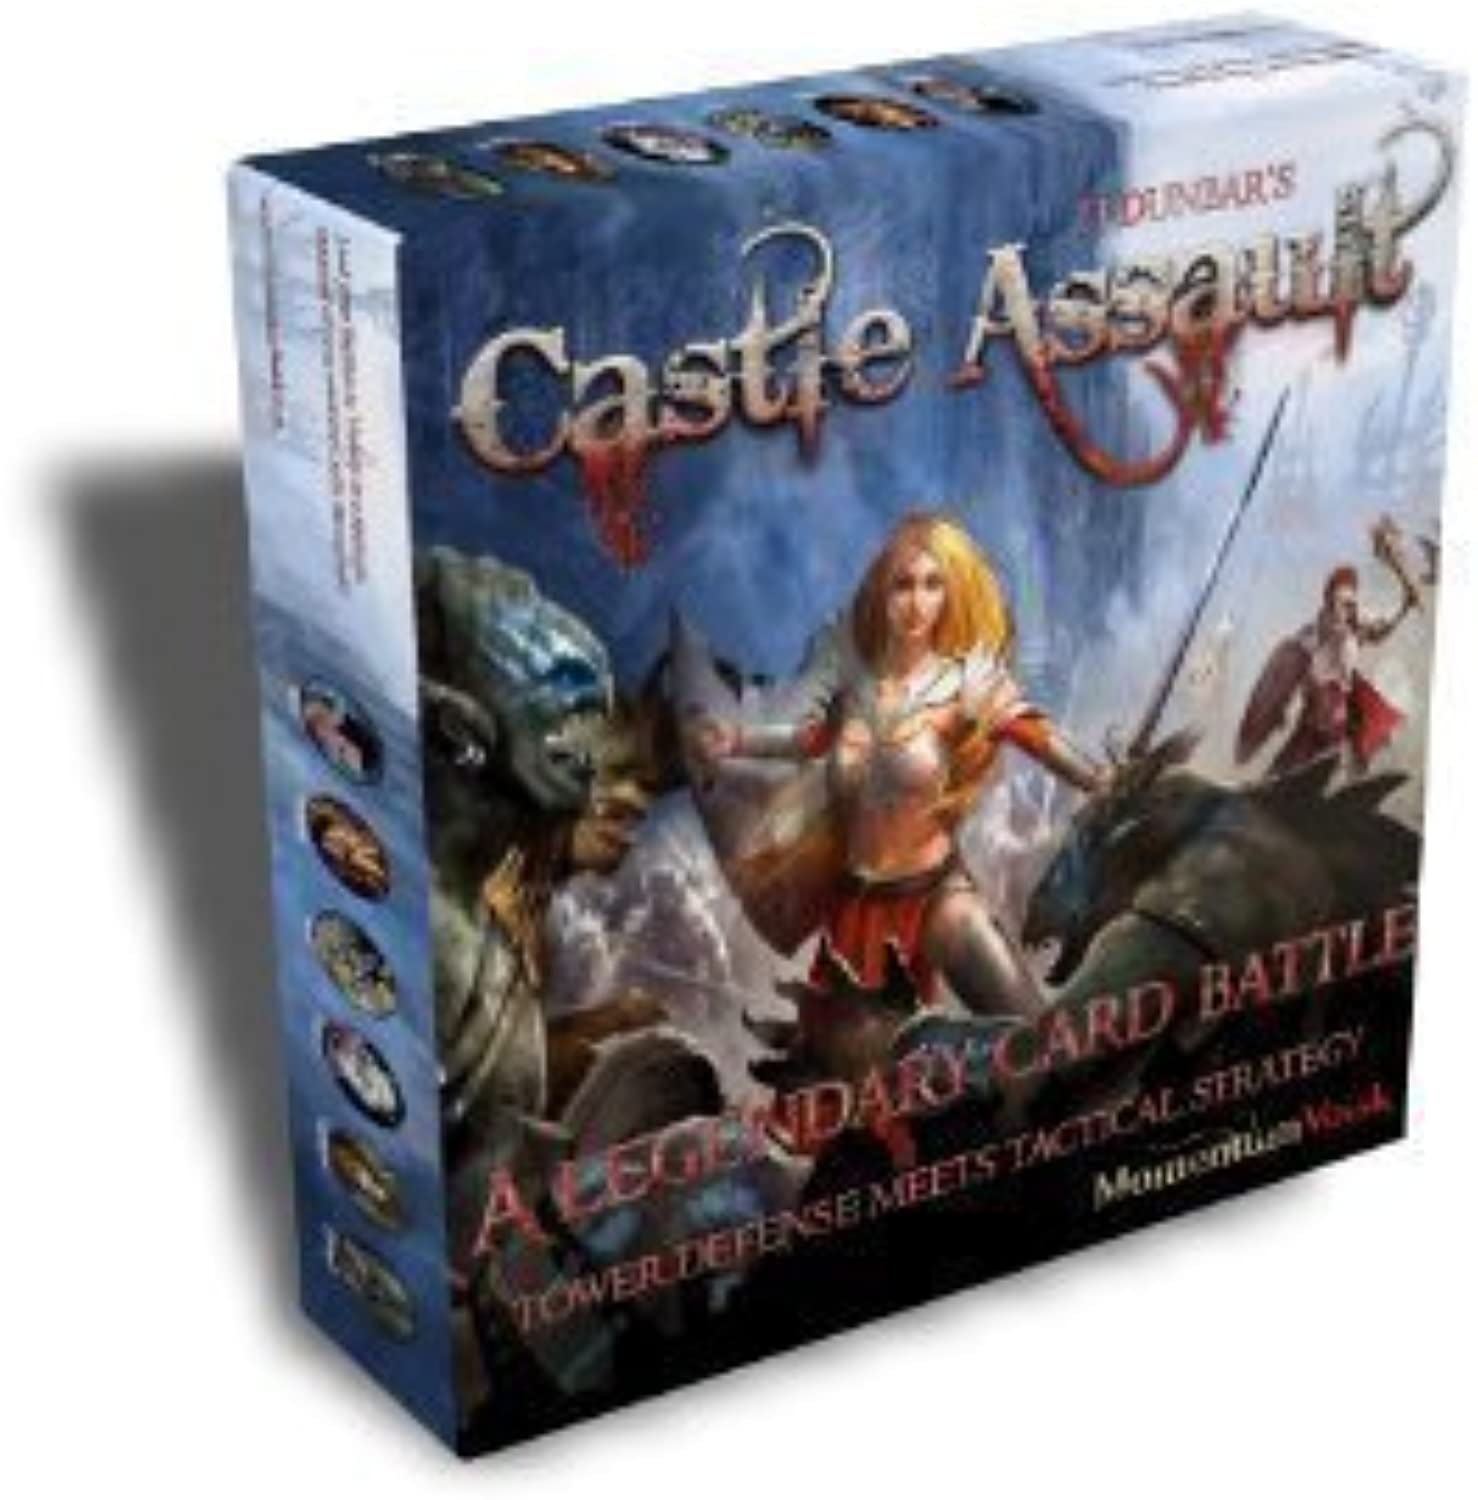 Castle Assault Premier Edition by MomentumVolsk